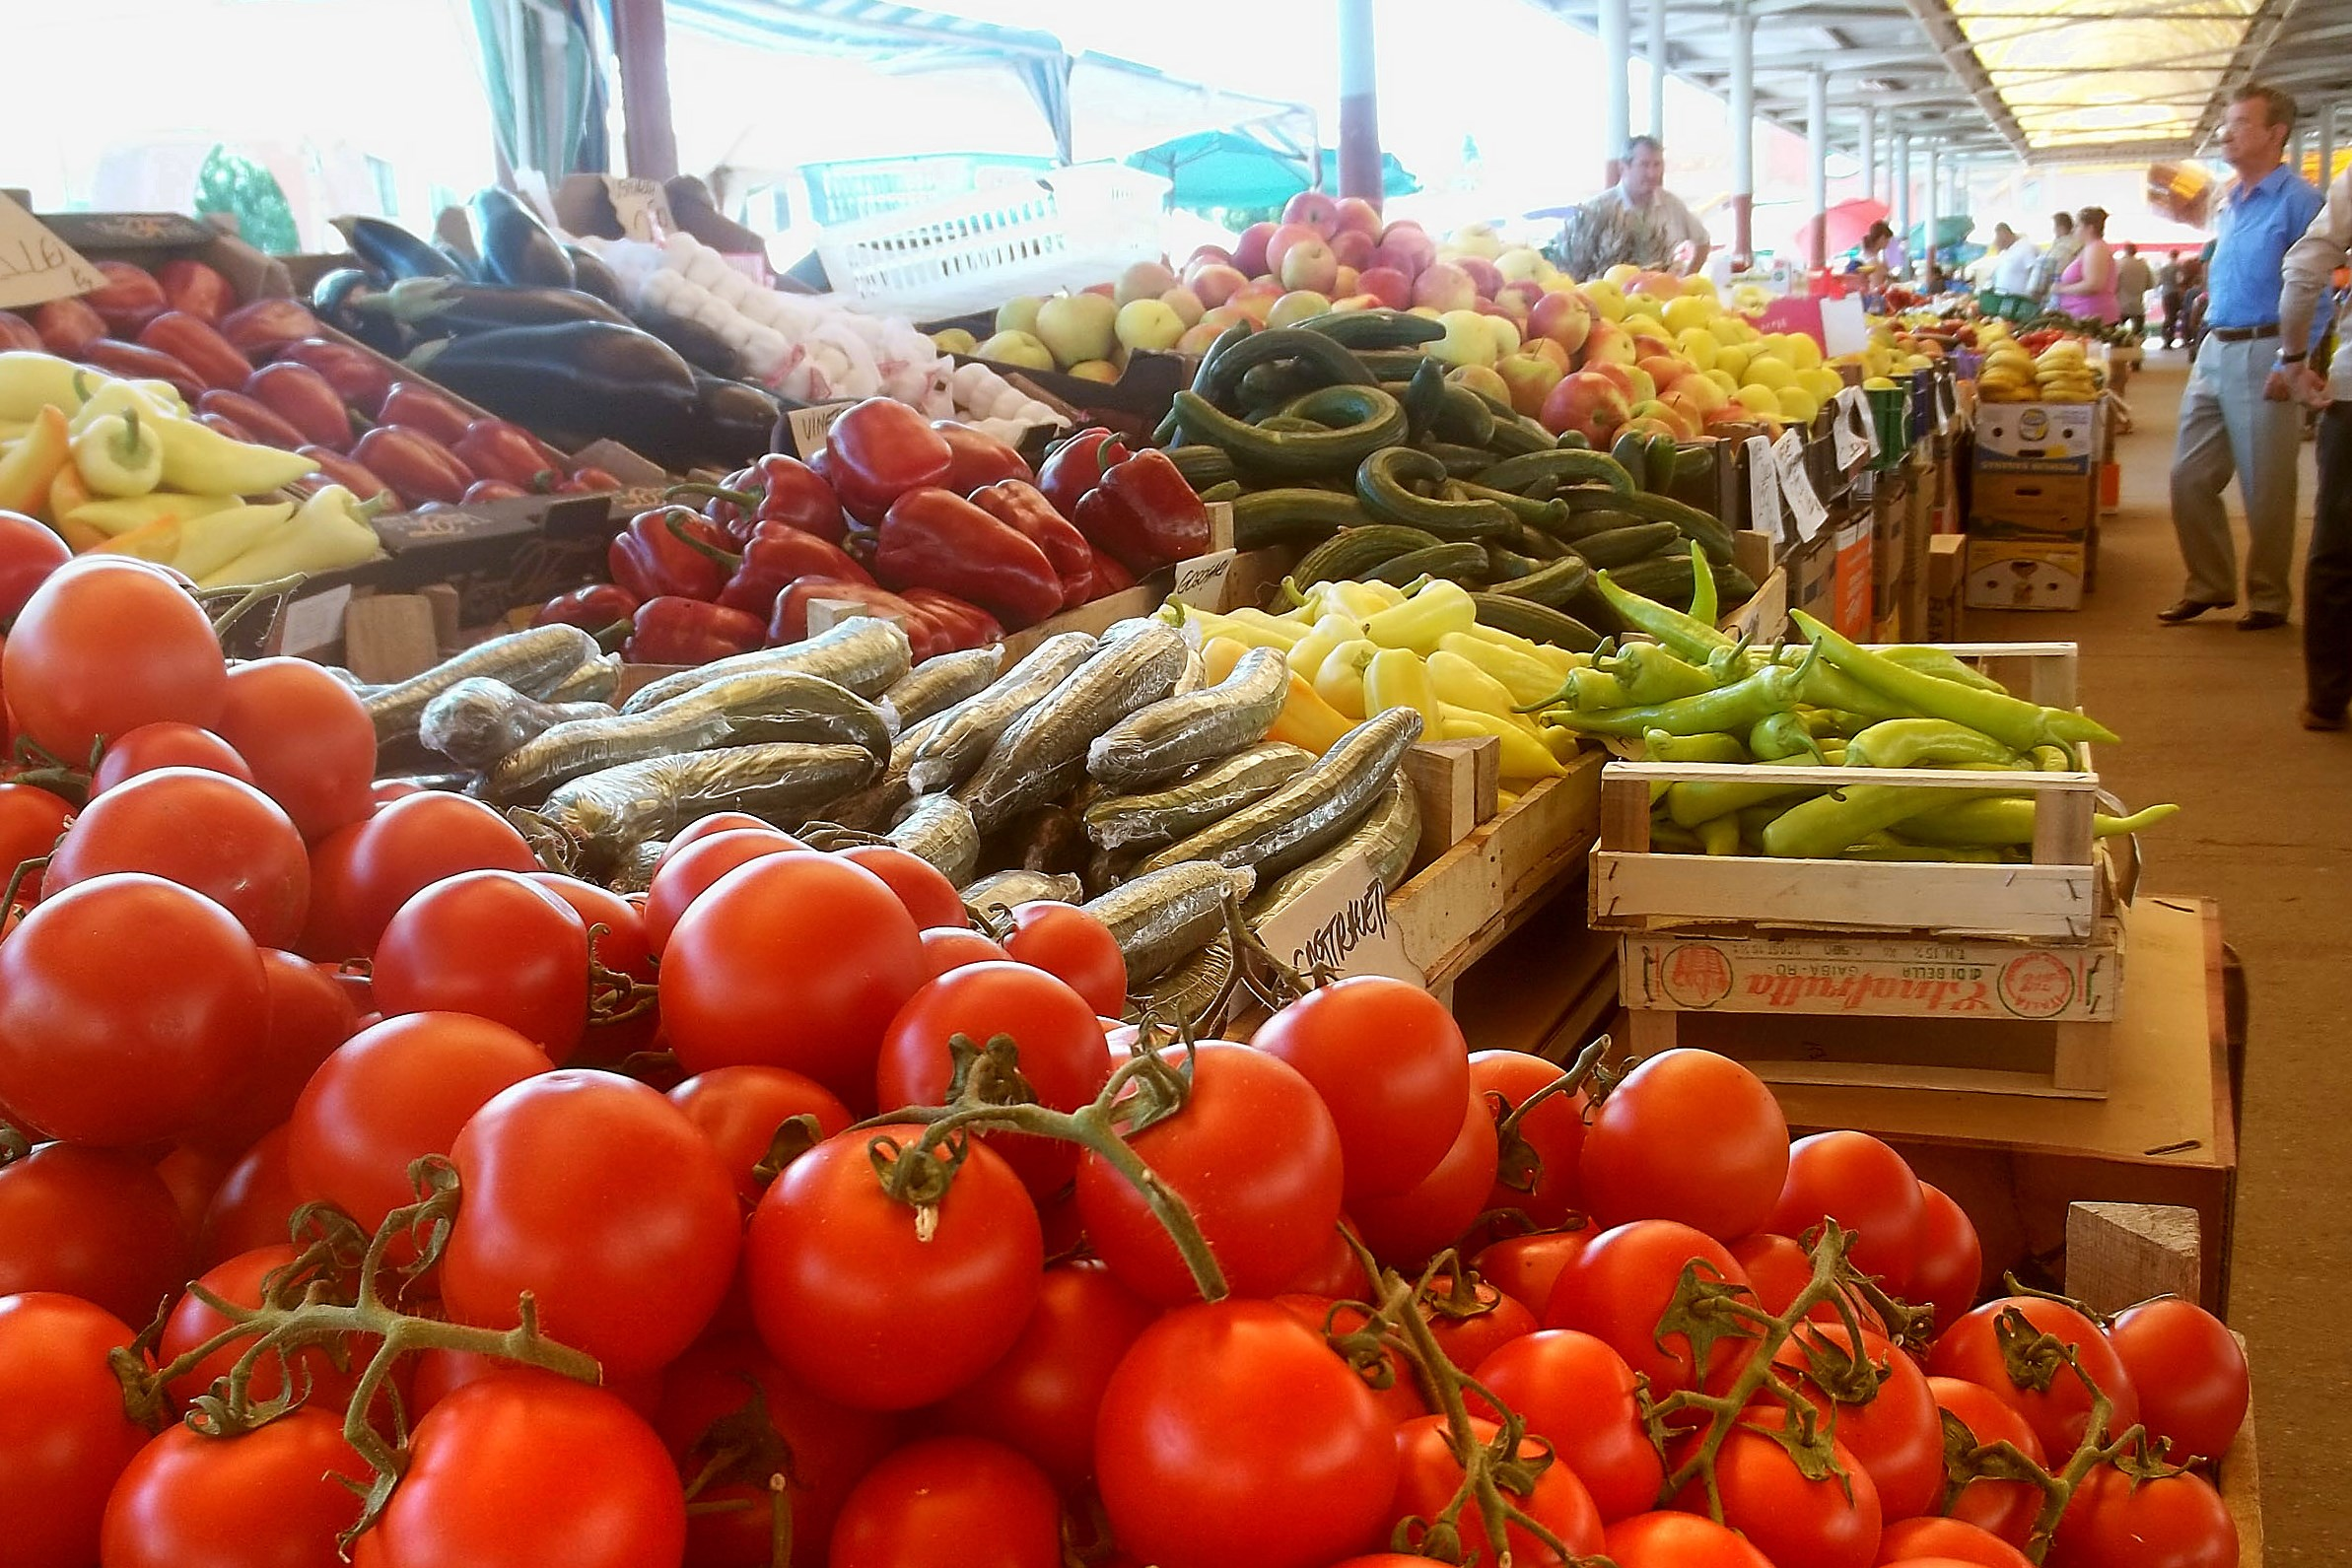 Closing soon: Why don't farmers markets operate year-round?